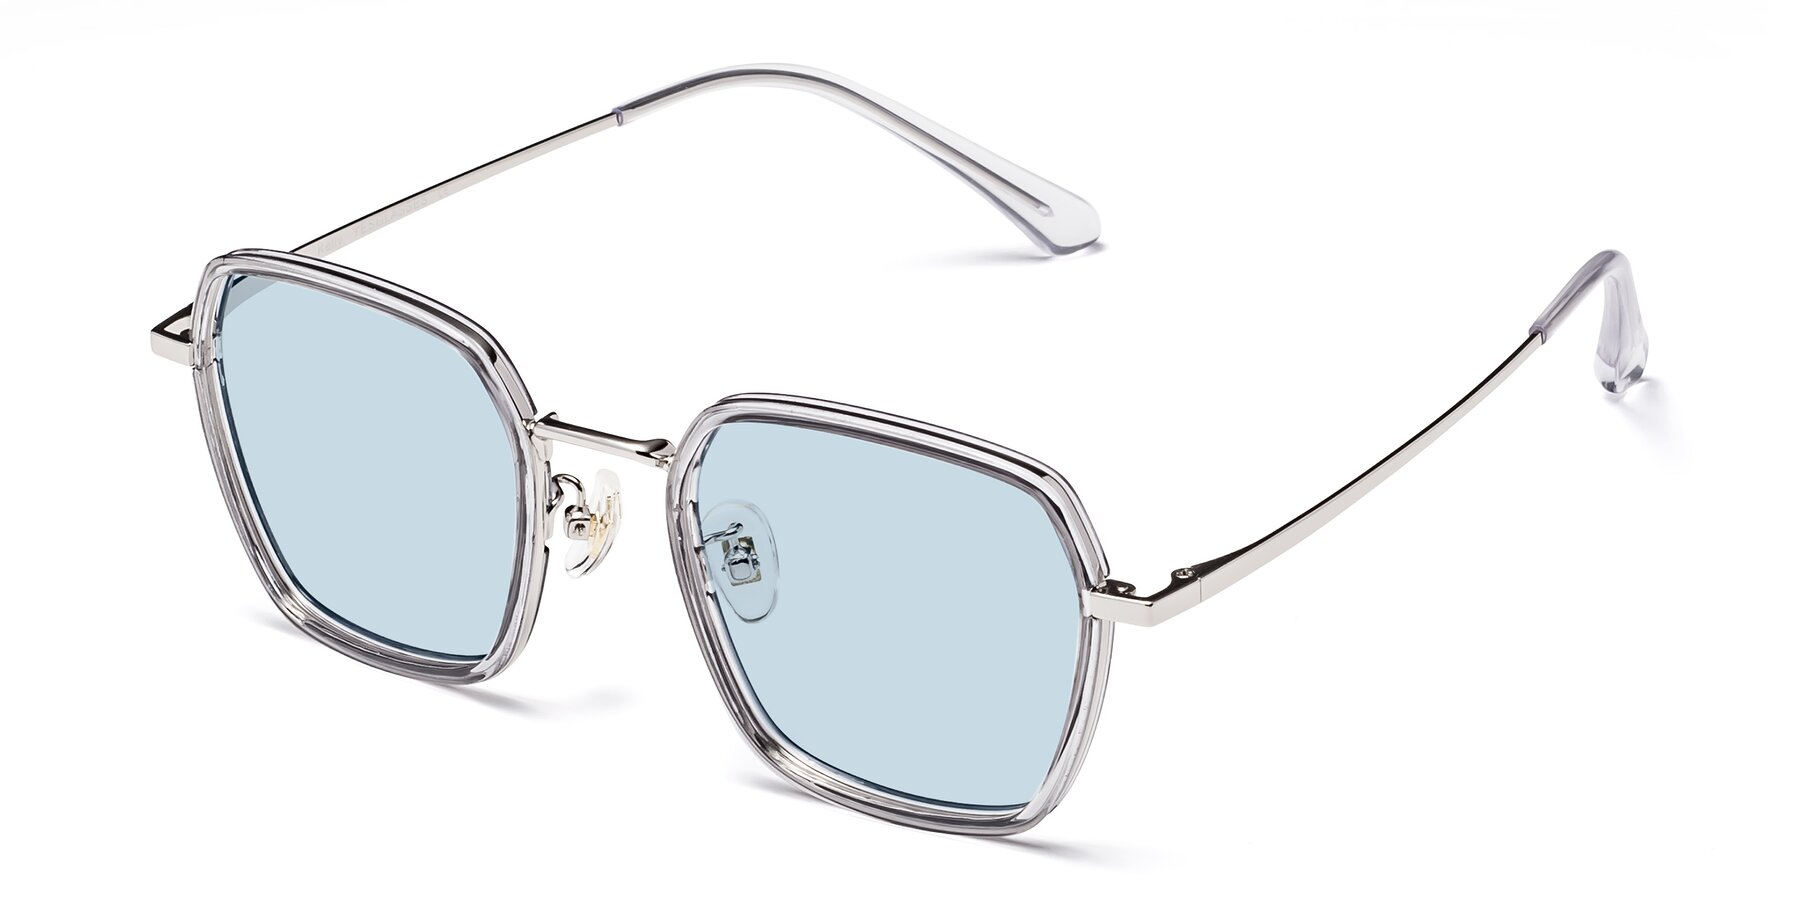 Angle of Kelly in Light Gray-Silver with Light Blue Tinted Lenses